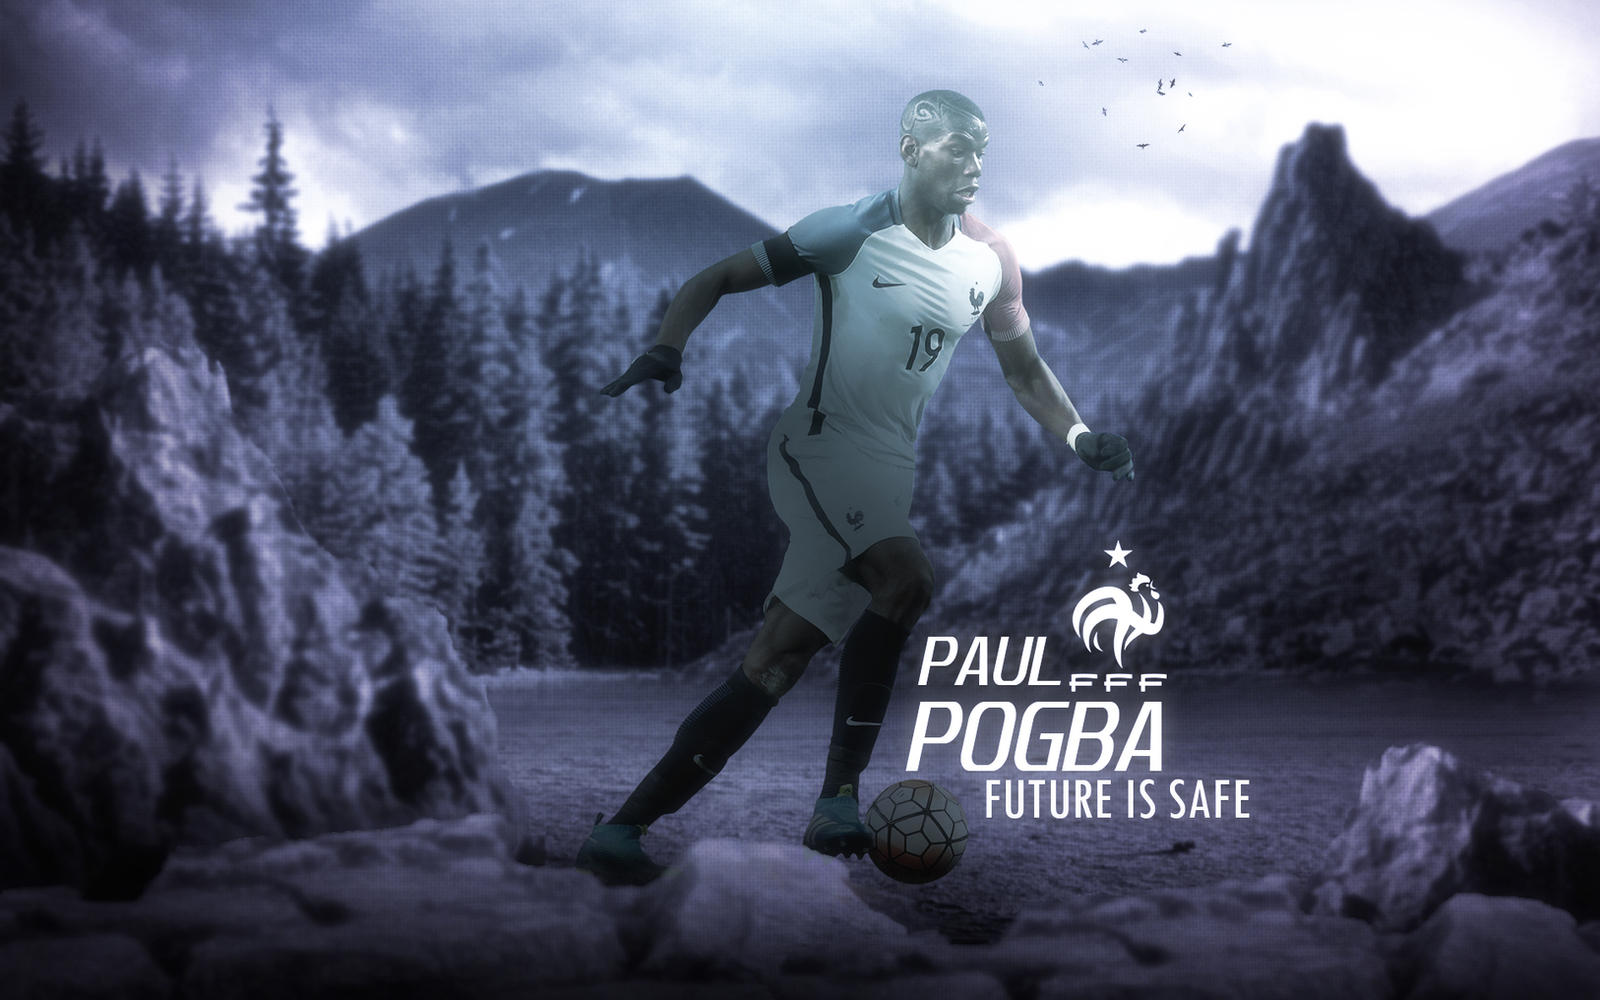 Paul Pogba 2015/16 Wallpaper